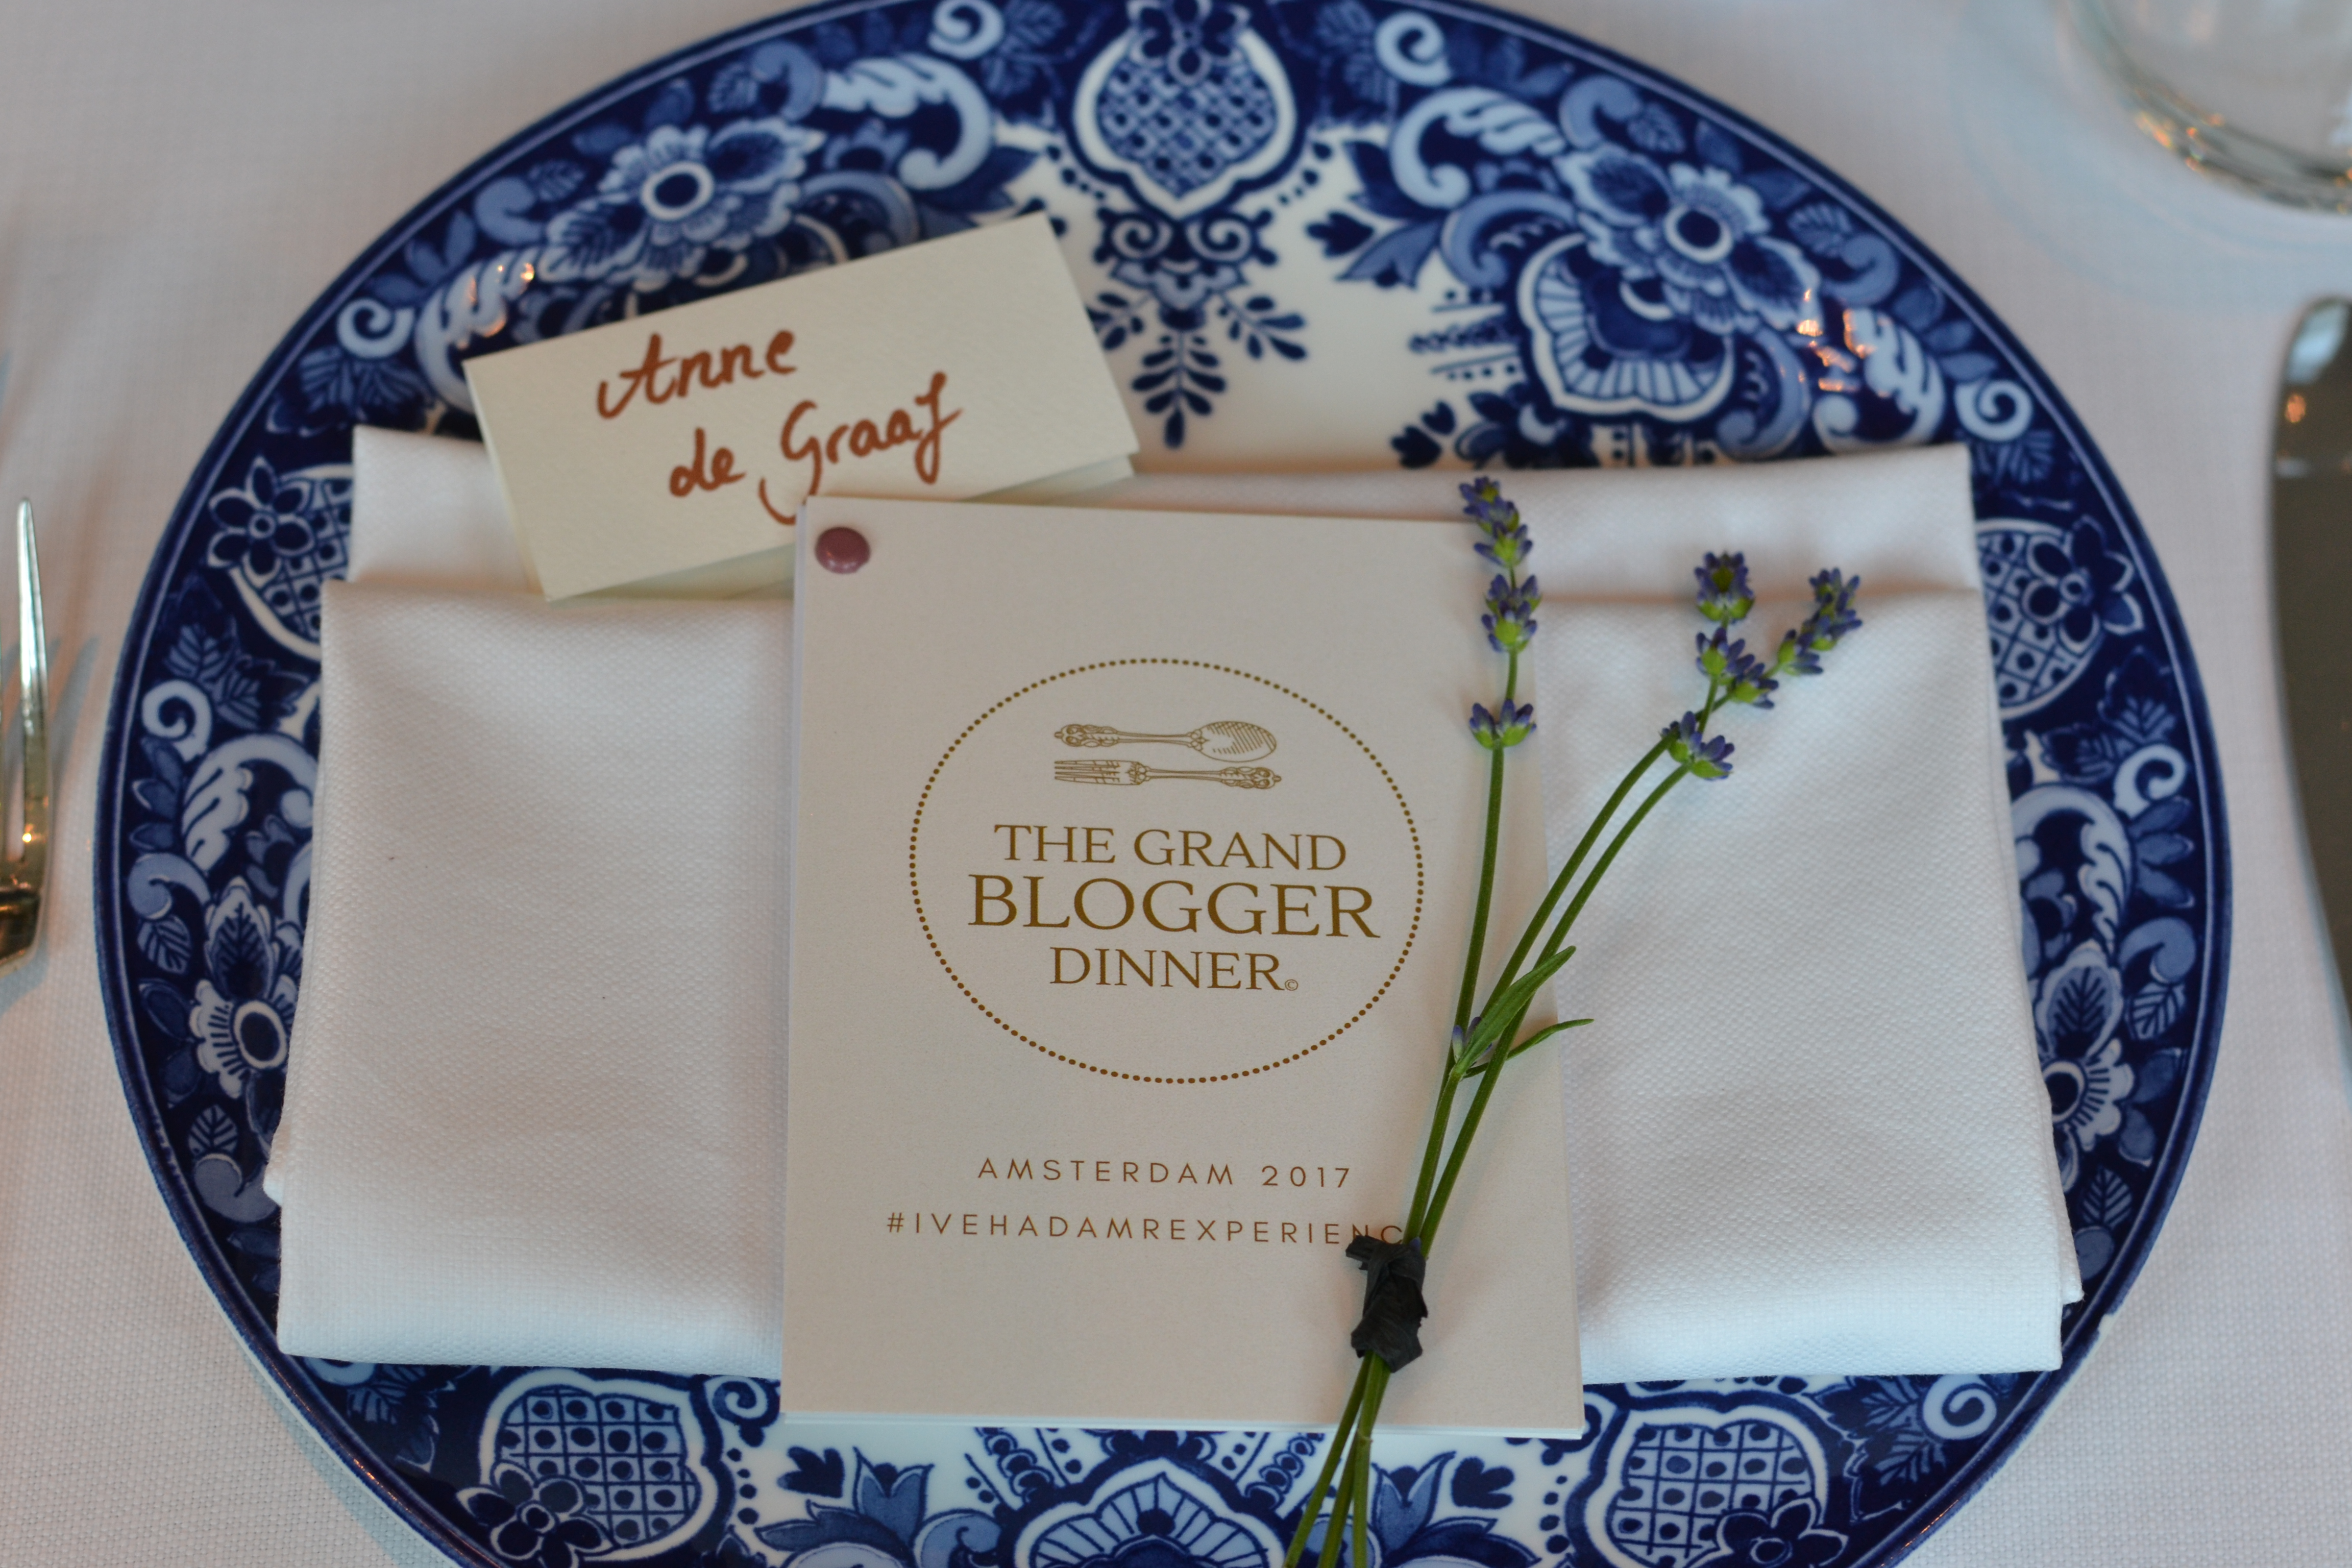 grote blogger diner mr experience c